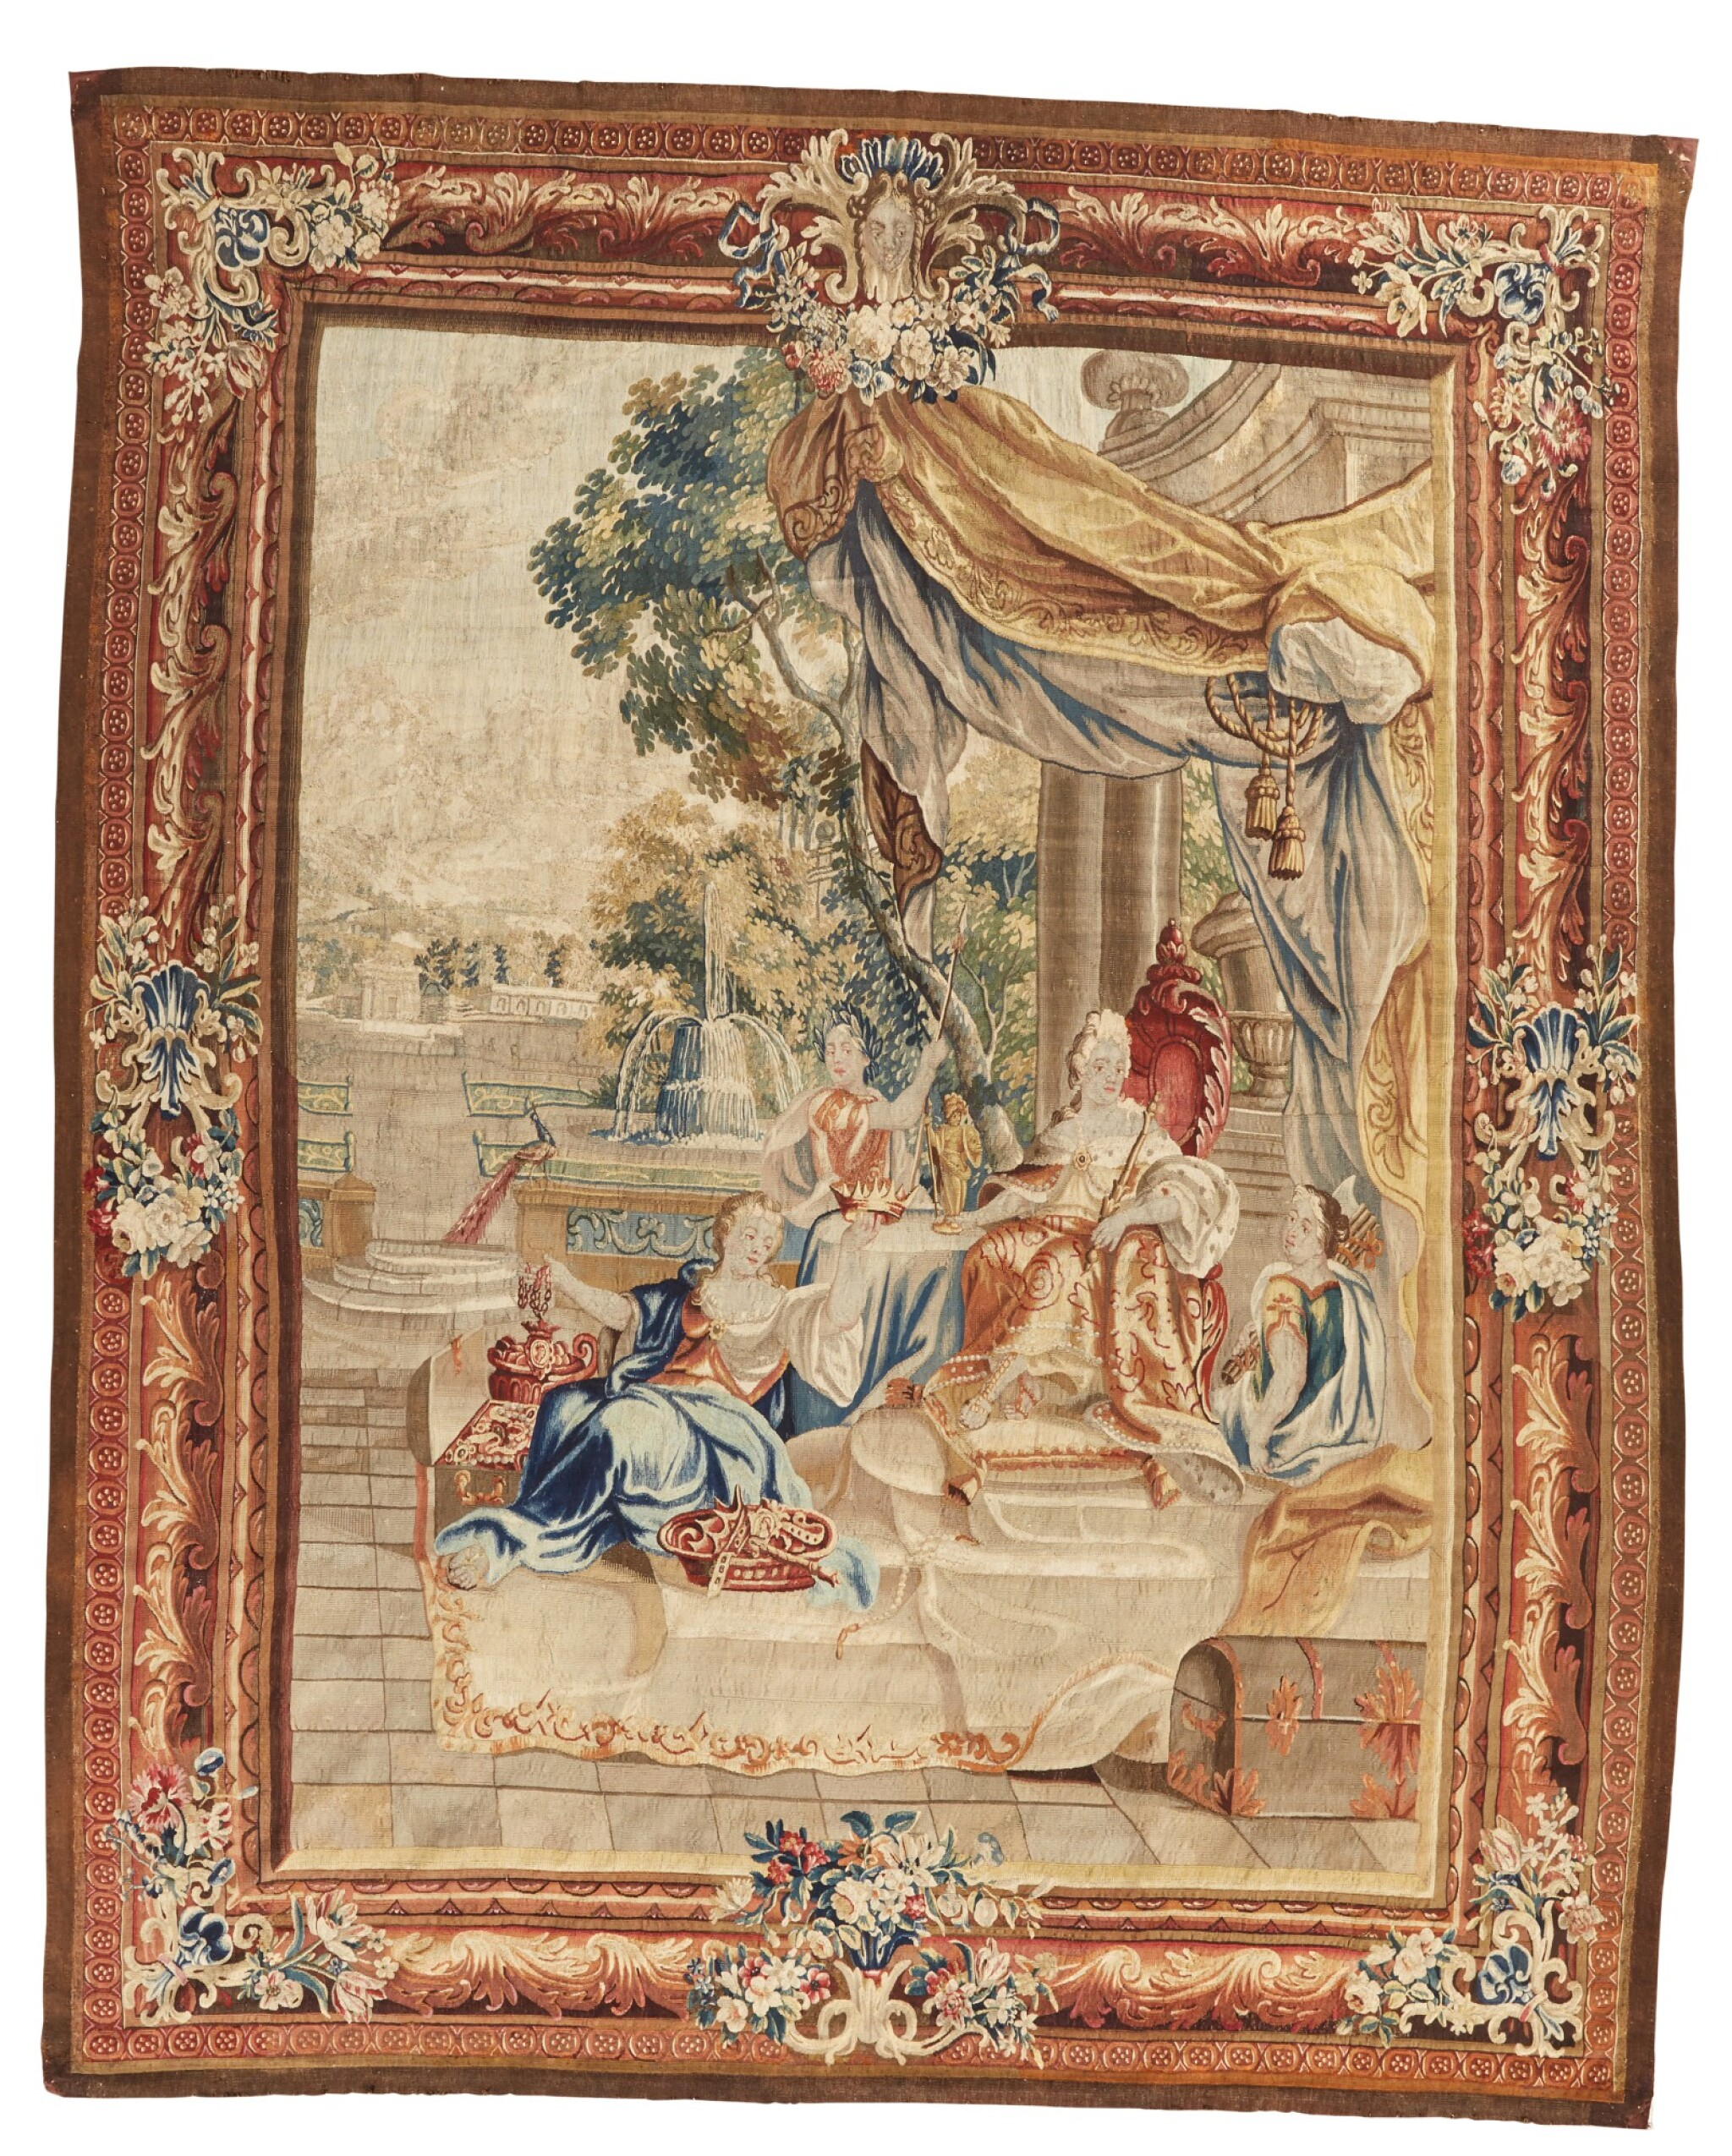 View 1 of Lot 15. A Flemish Classical Tapestry, 'Oriana receiving war booty from Amadis, in King Lisuart's castle', from the story of Amadis and Oriana,after design by Louis van Schoor and Pieter Spierincx, Brussels, 18th century.